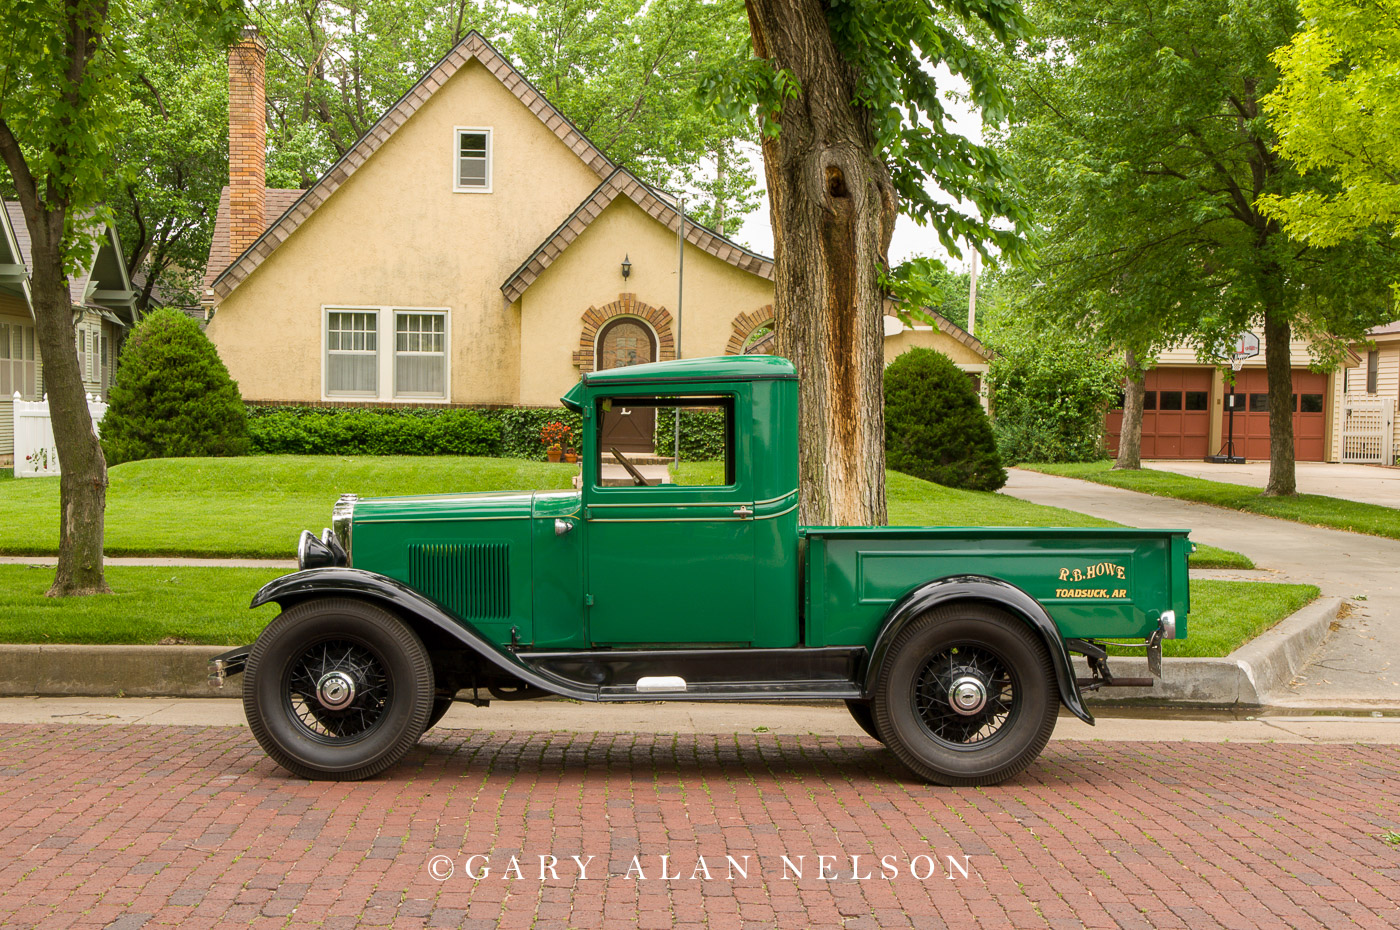 VT-08-19-CH 1931 Chevrolet Independence Pickup